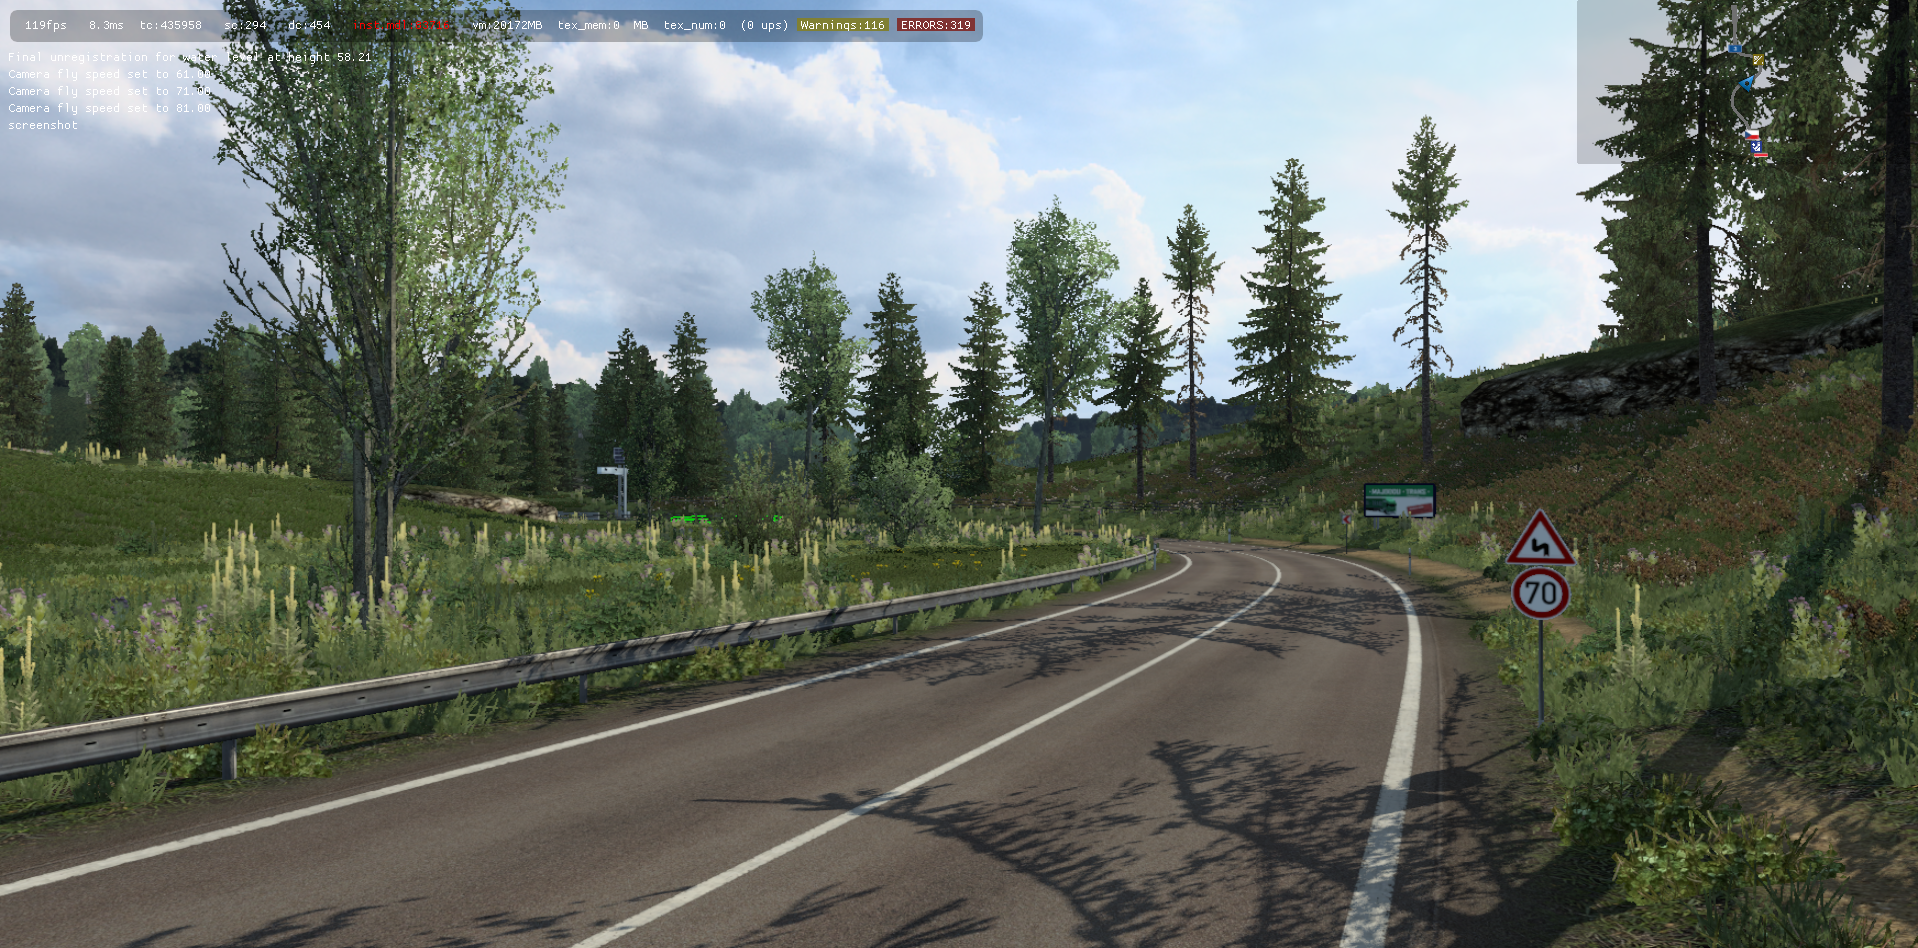 ets2_20210725_214317_00.png